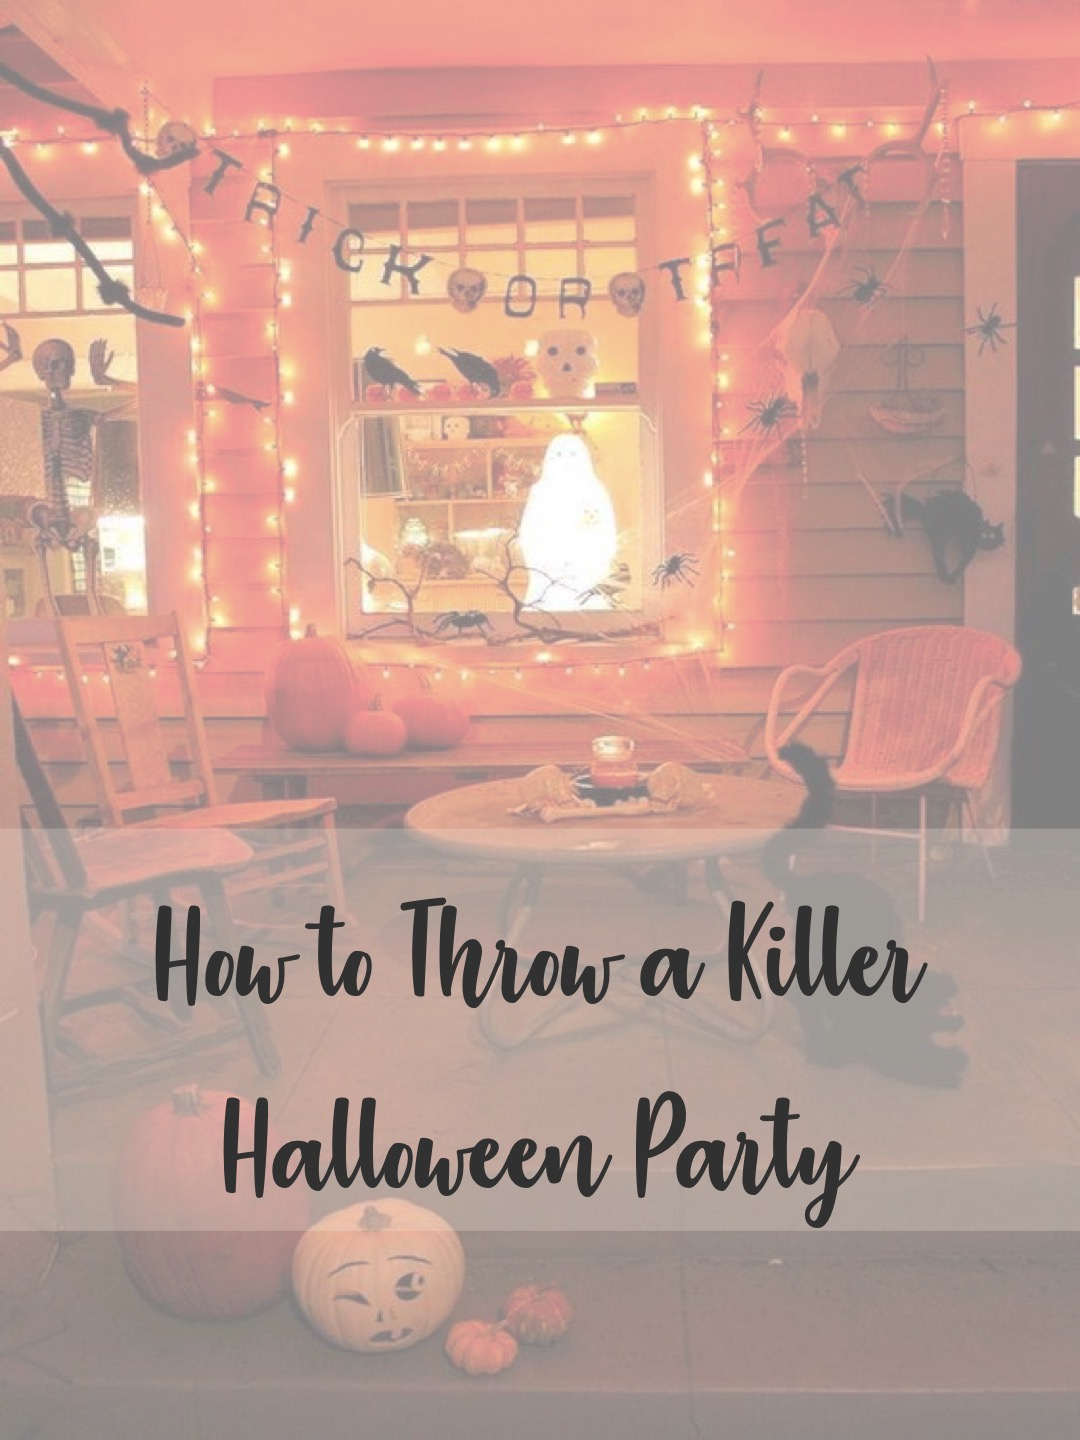 How To Throw a Killer Halloween Party